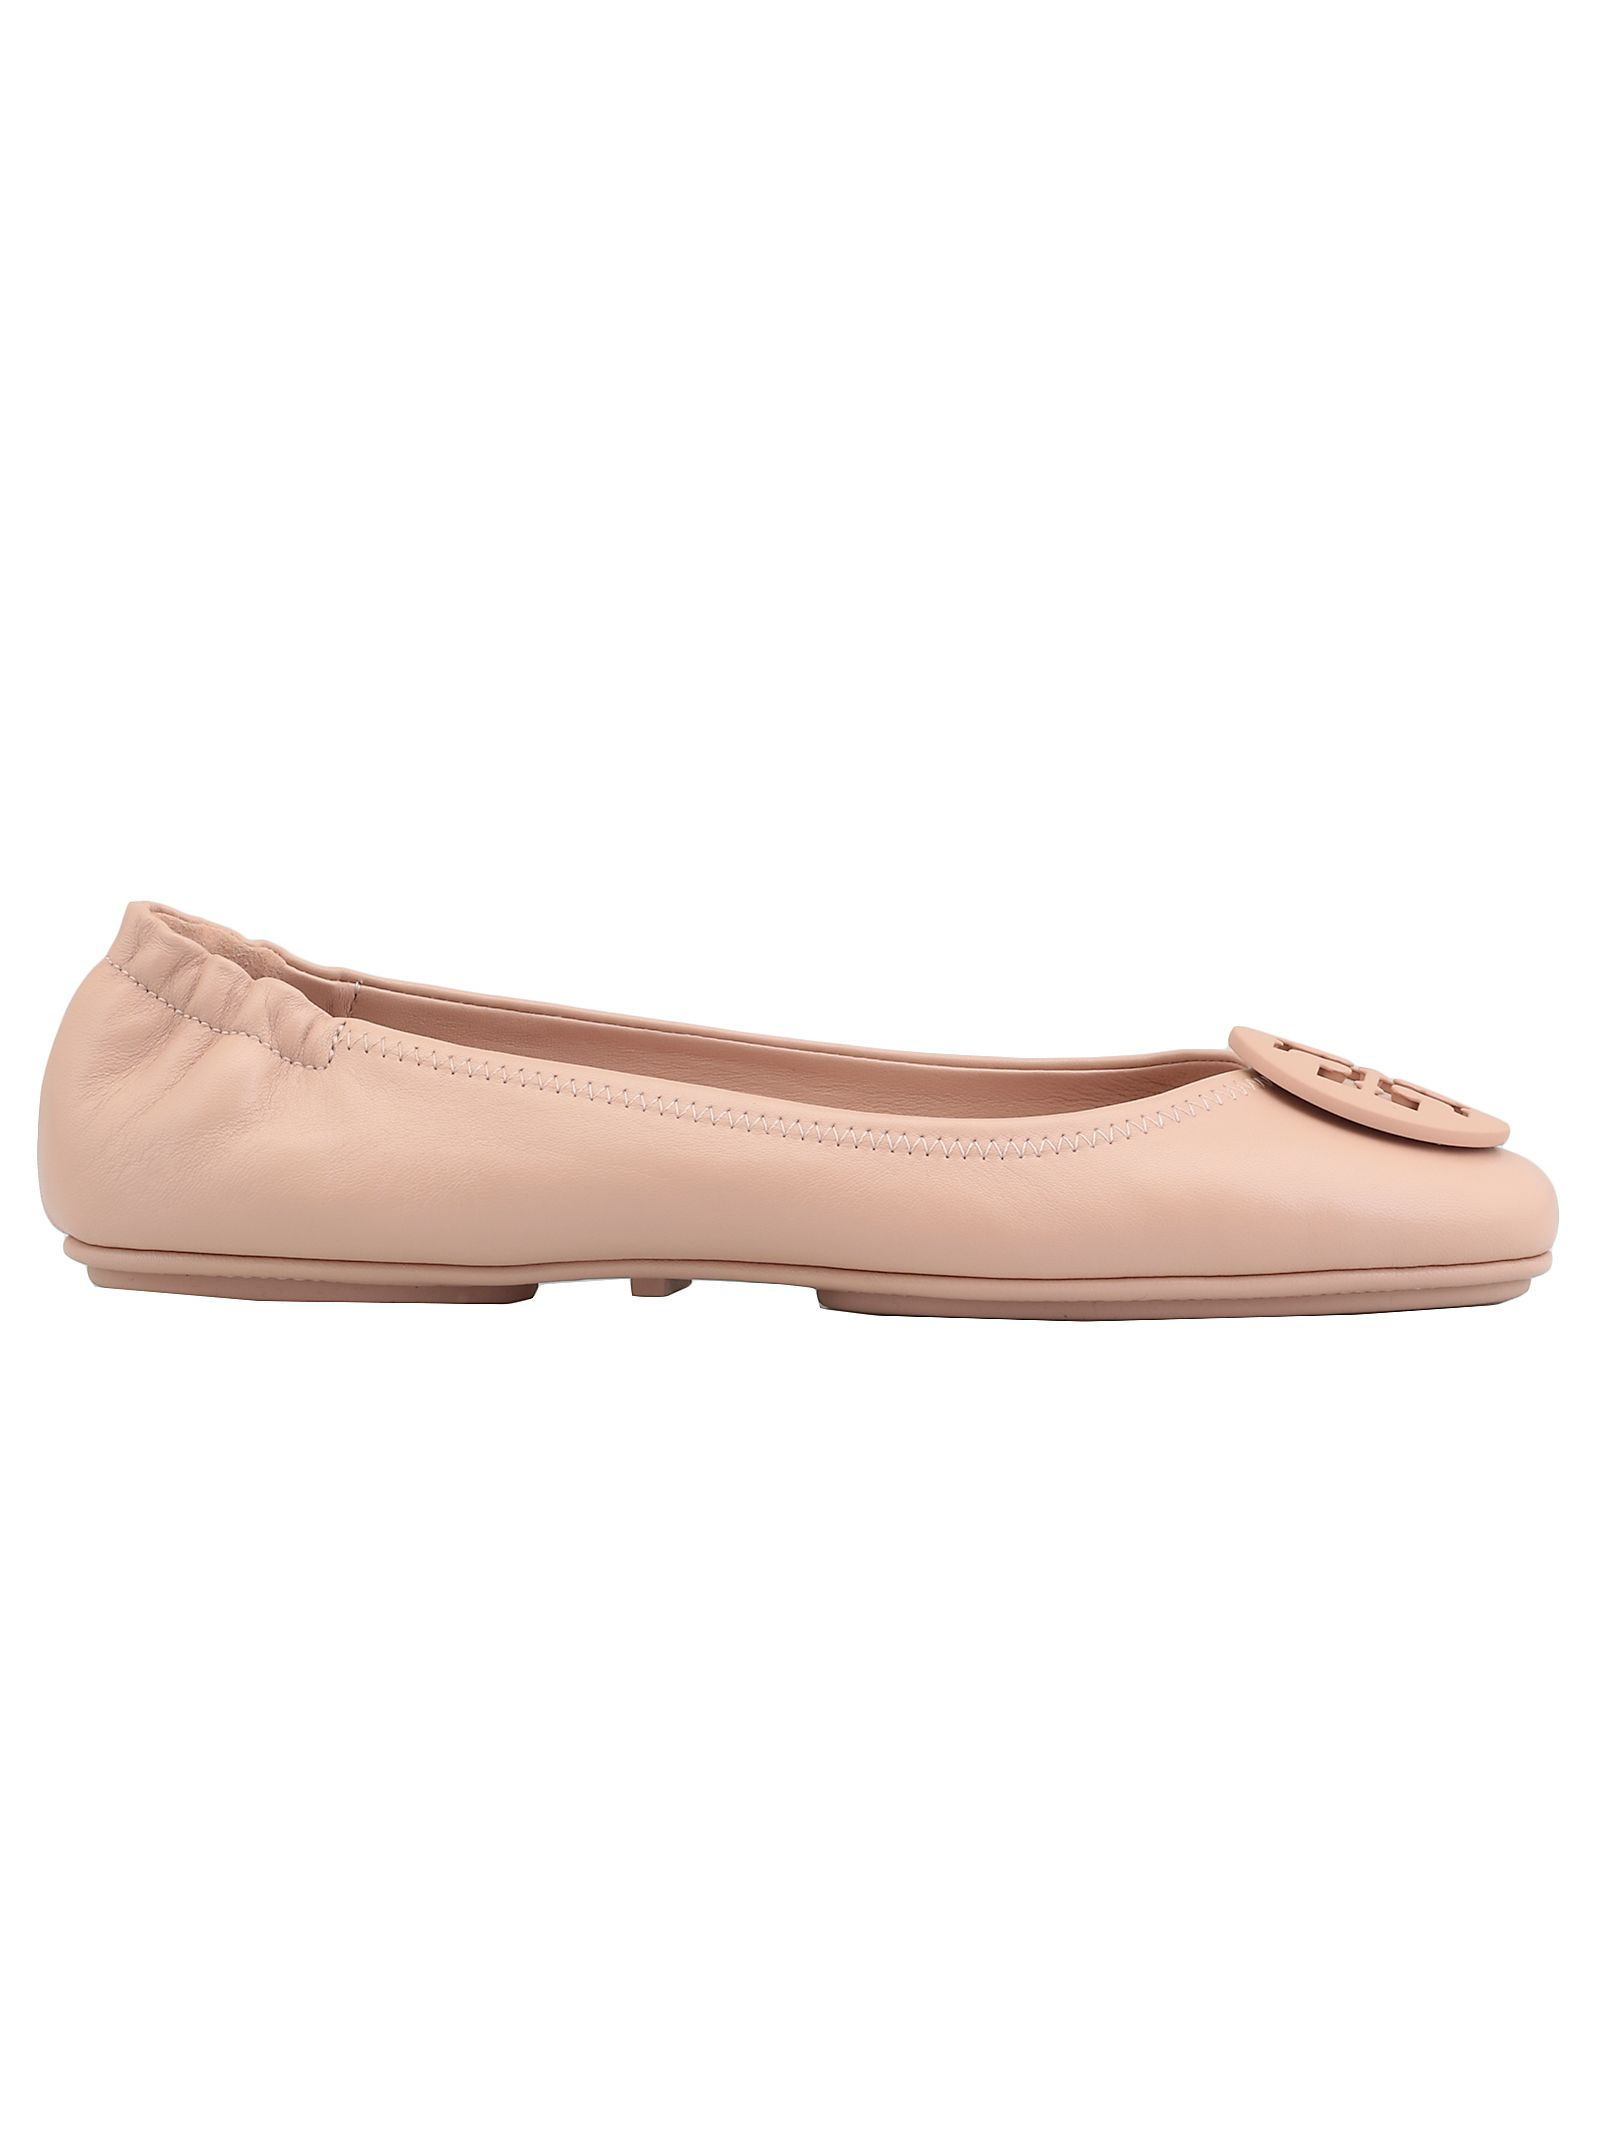 be4047fca Tory Burch Tory Burch Minnie Travel Ballet - GOAN SAND - 10808860 ...